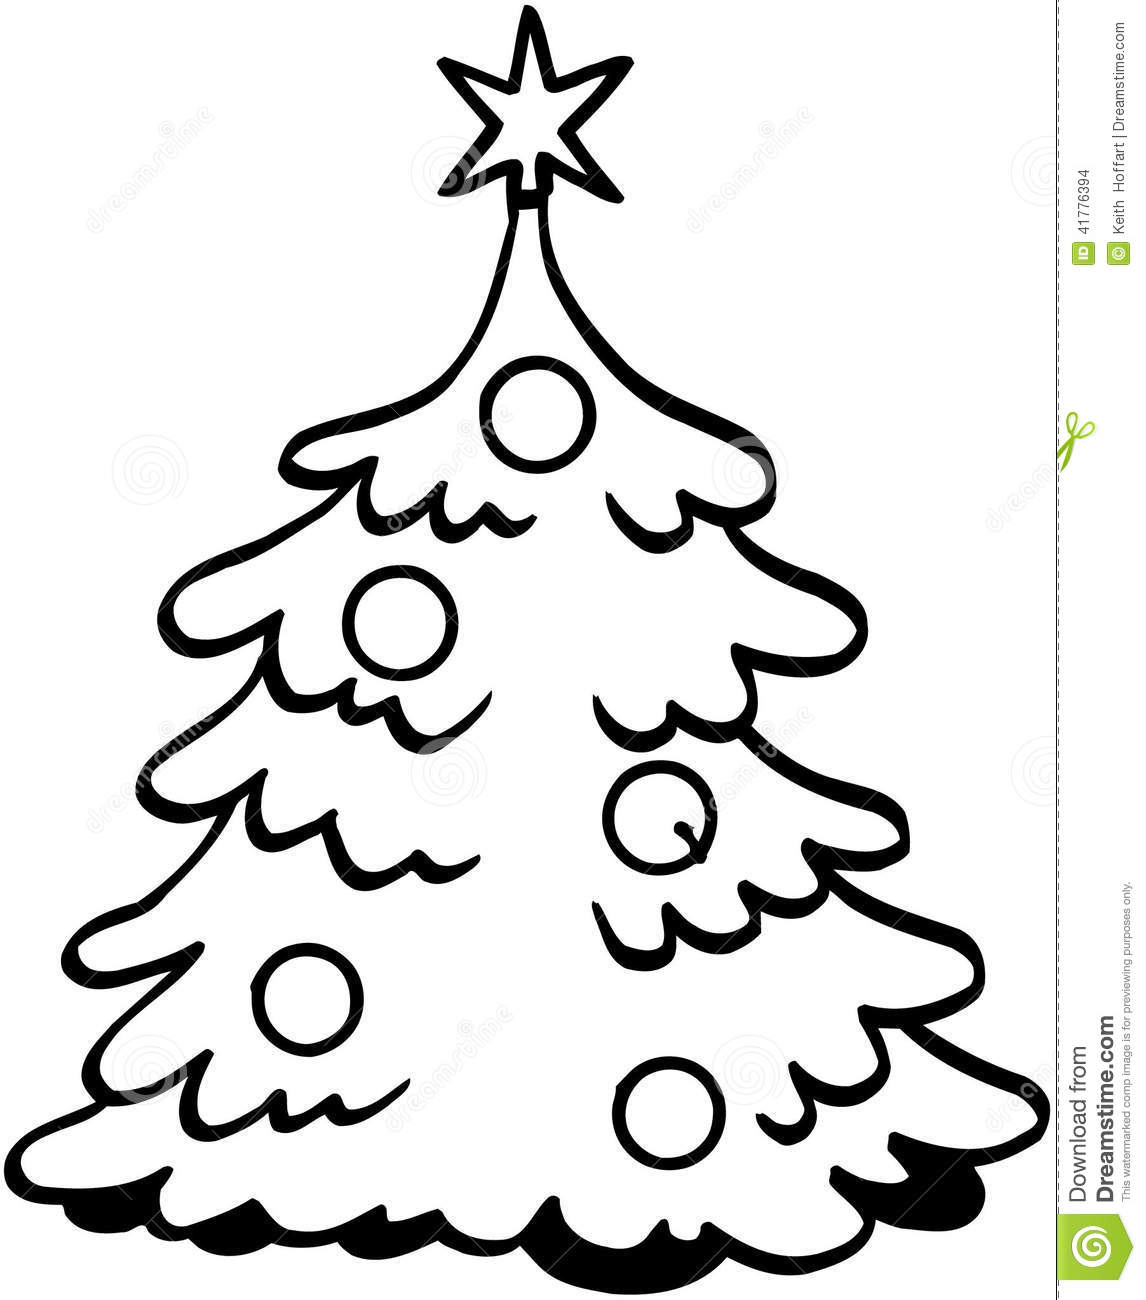 christmas tree cartoon vector clipart stock vector illustration of holidays stockings 41776394 dreamstime com